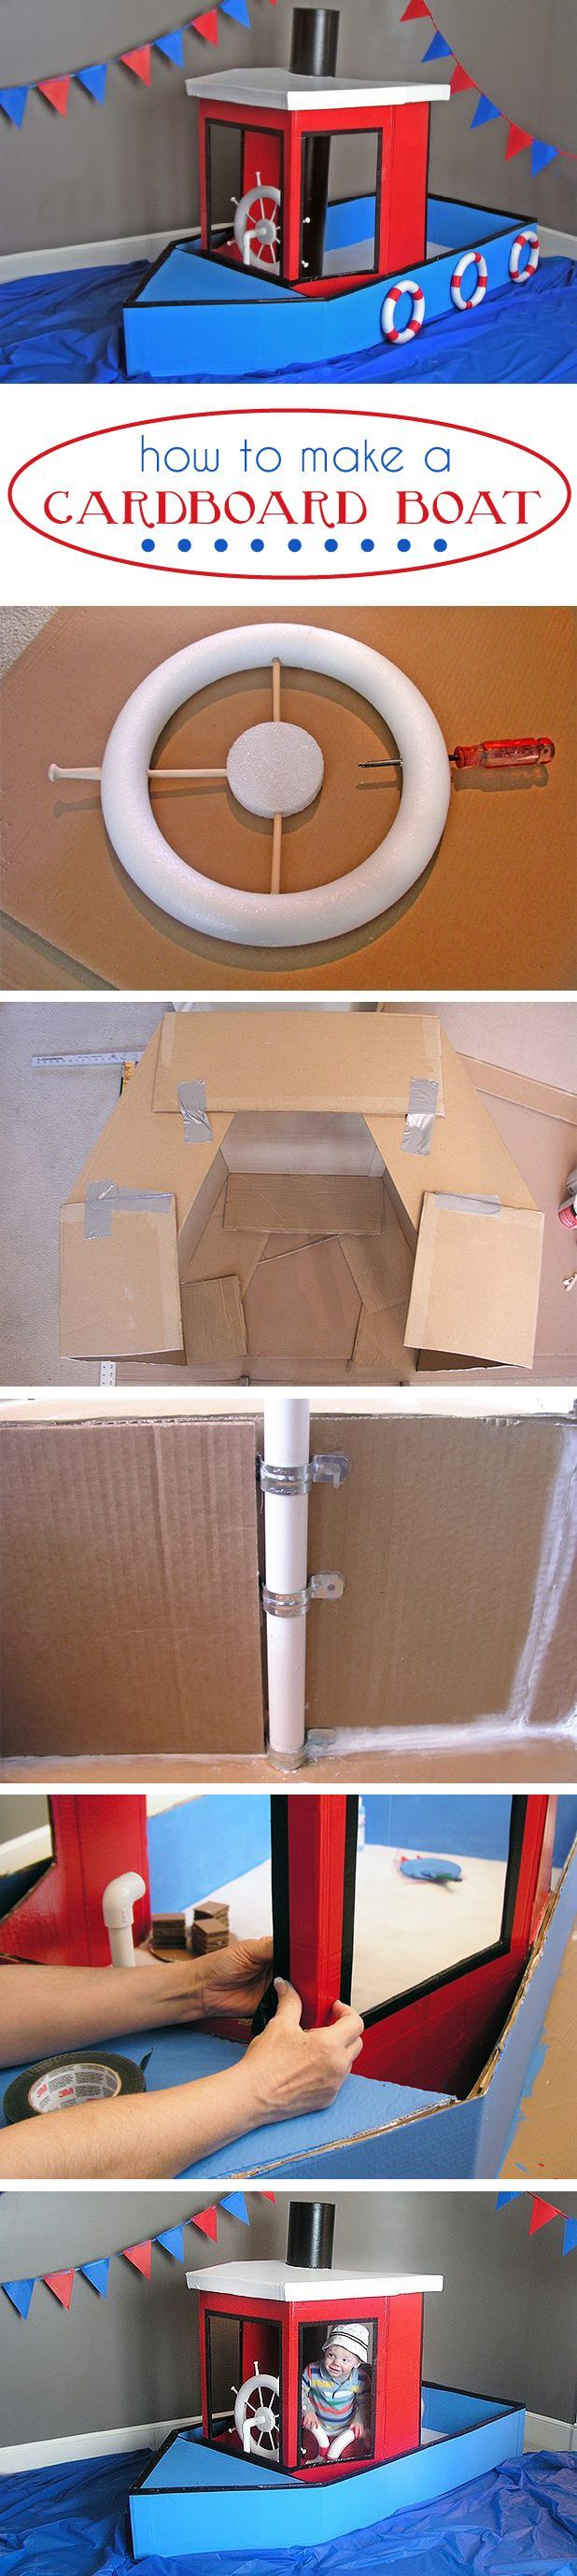 The coolest thing to happen since forts! Set your kids imagination free out on the open sea, a.k.a your living room with this DIY cardboard boat. It's cheap to make but still durable. We love this project so much! http://www.ehow.com/how_4844388_cardboard-boat.html?utm_source=pinterest.com&utm_medium=referral&utm_content=inline&utm_campaign=fanpage